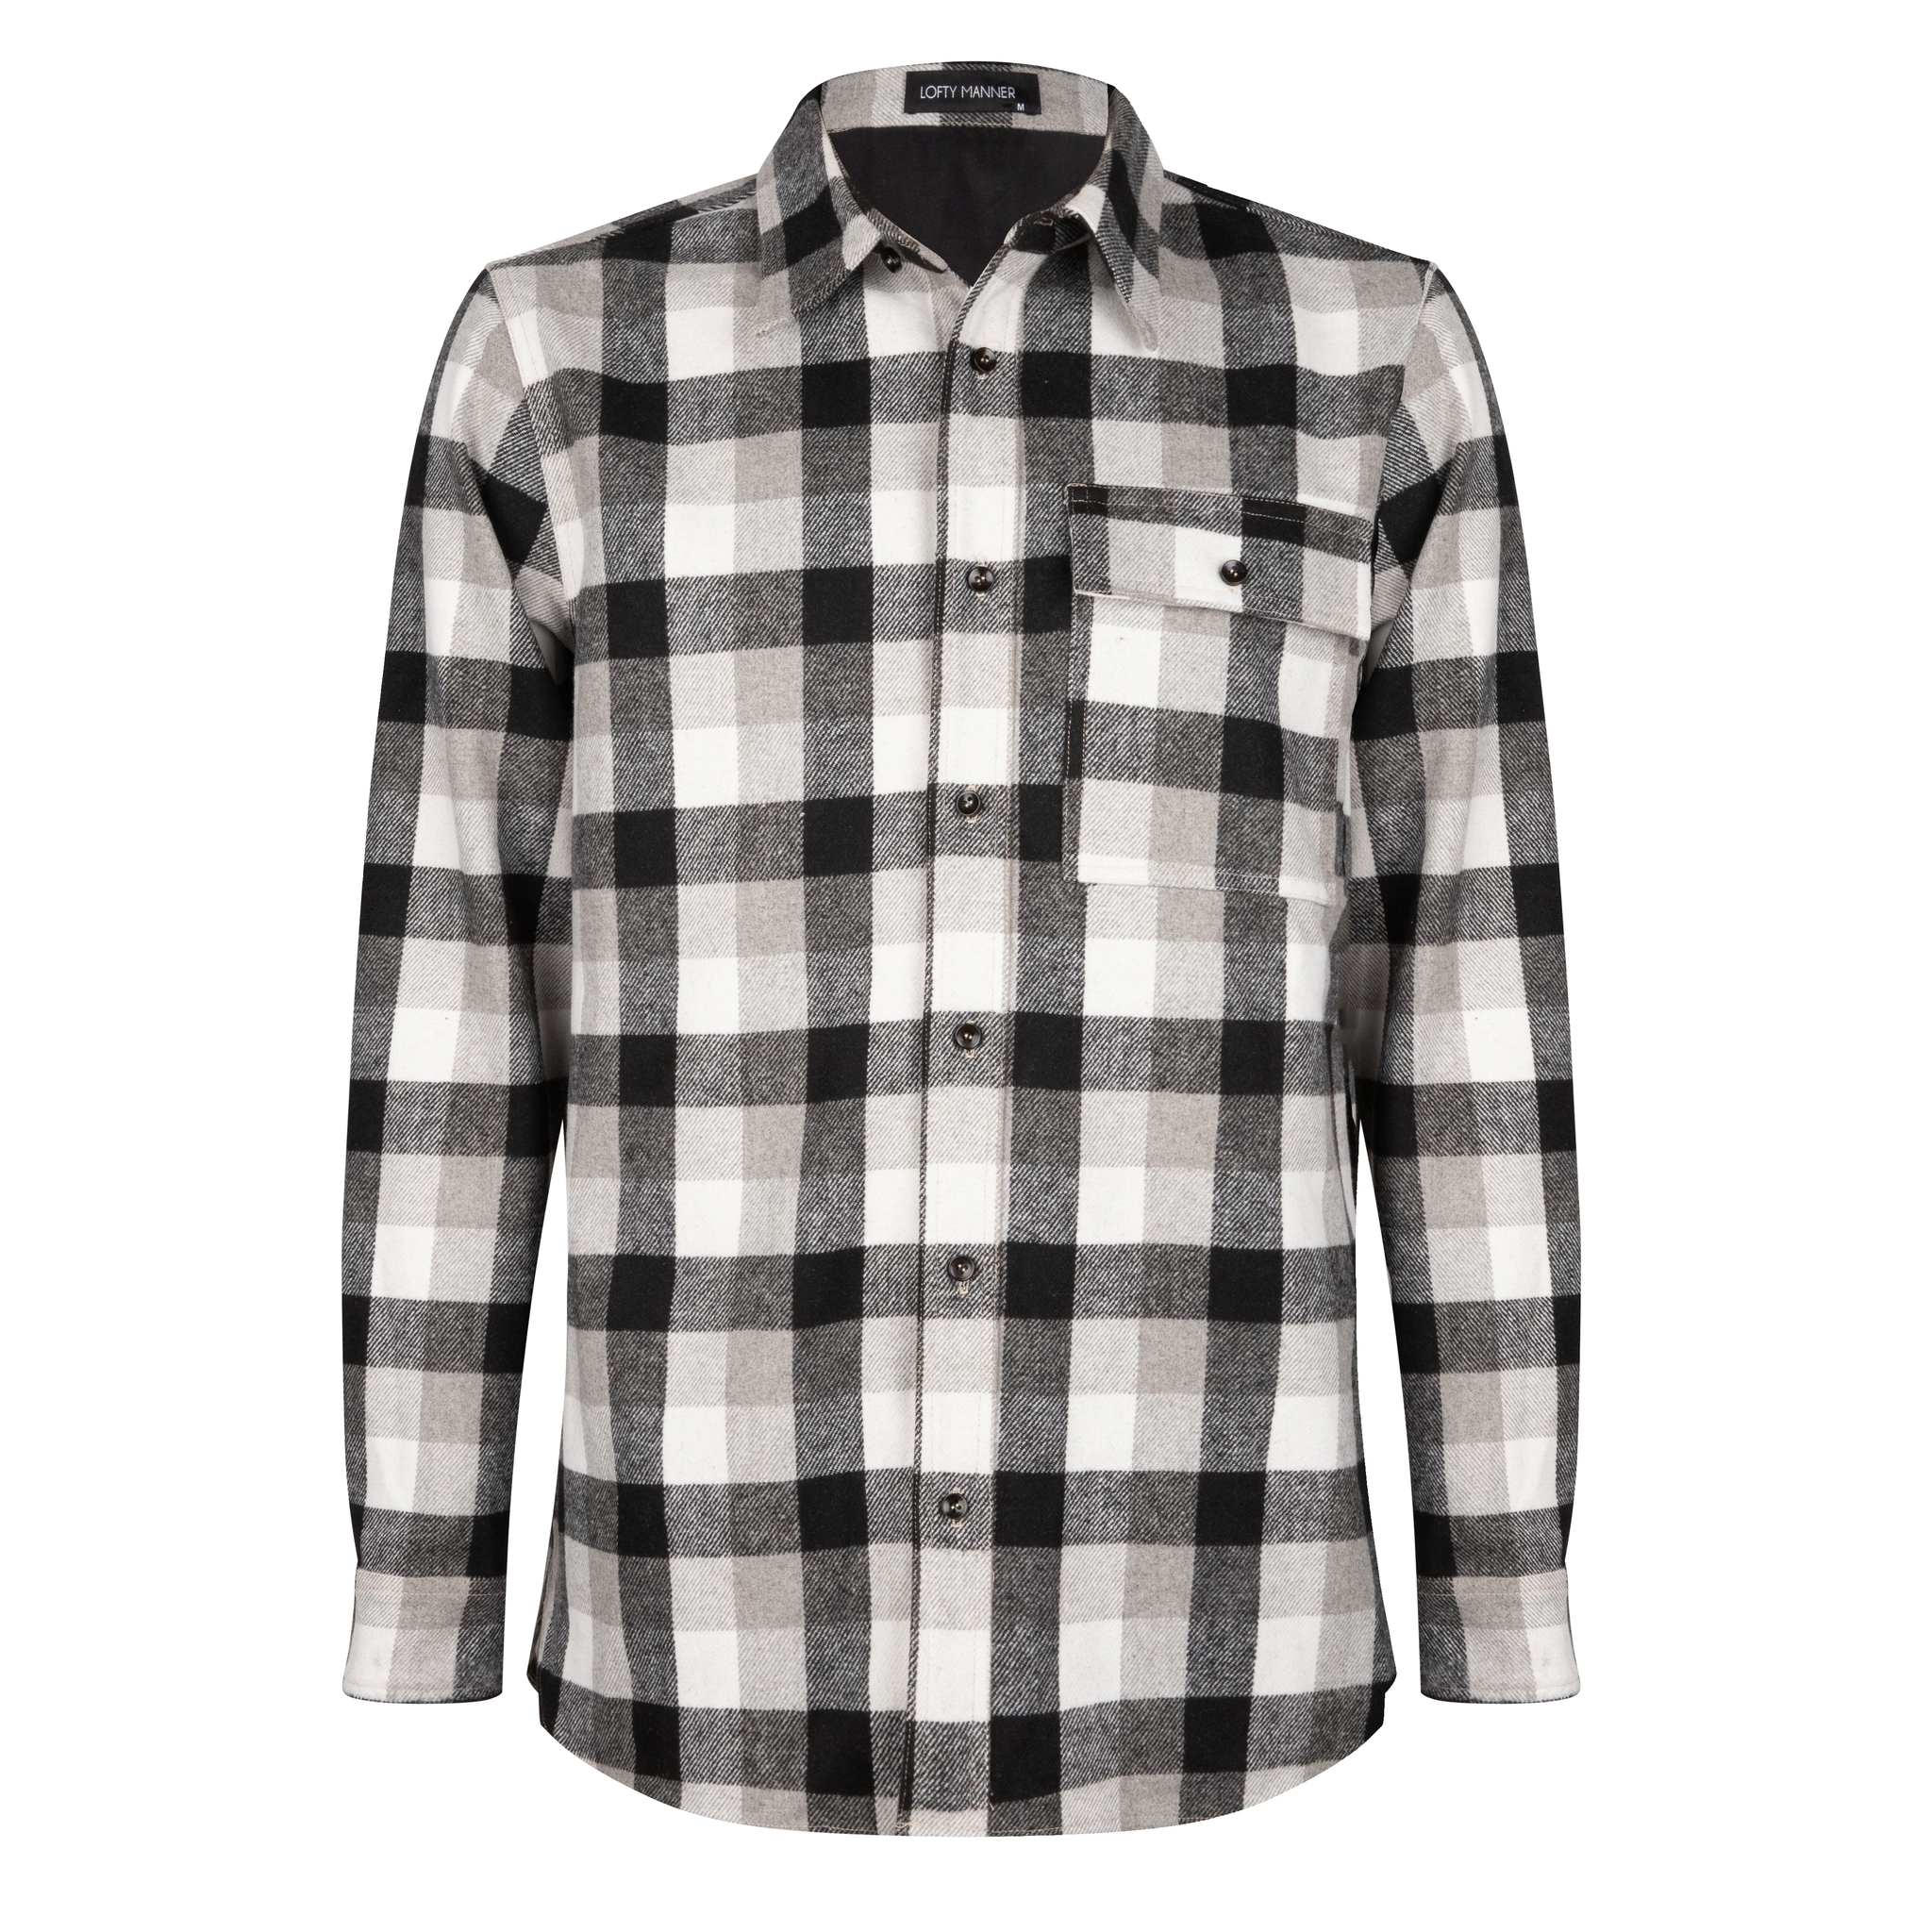 Lofty Manner Black and White Blouse Maximo